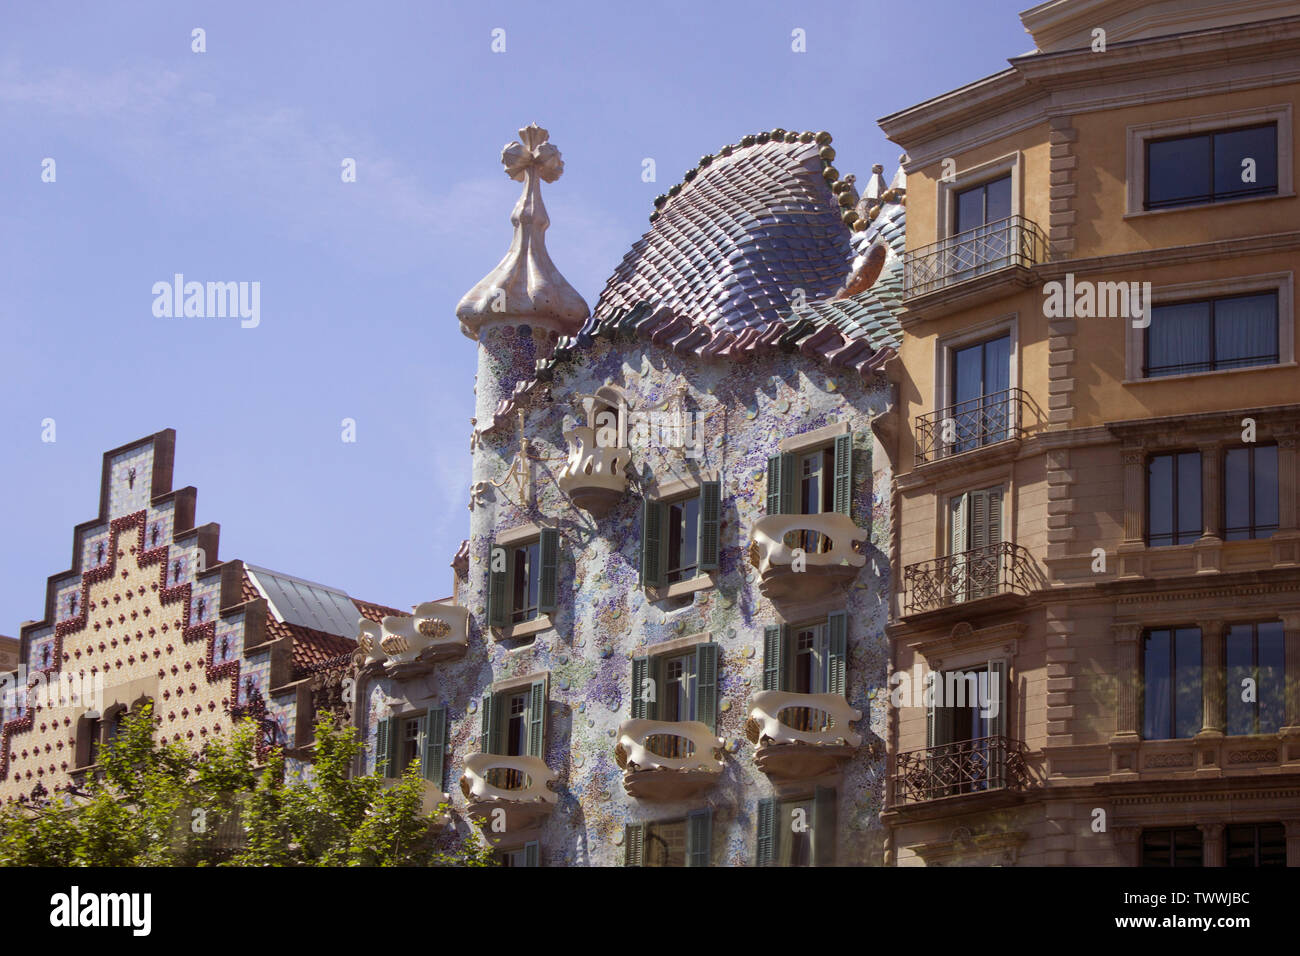 Casa Batlló, framed by buildings in other styles.  Considered as one of Gaudi's masterpieces, in central Barcelona. - Stock Image